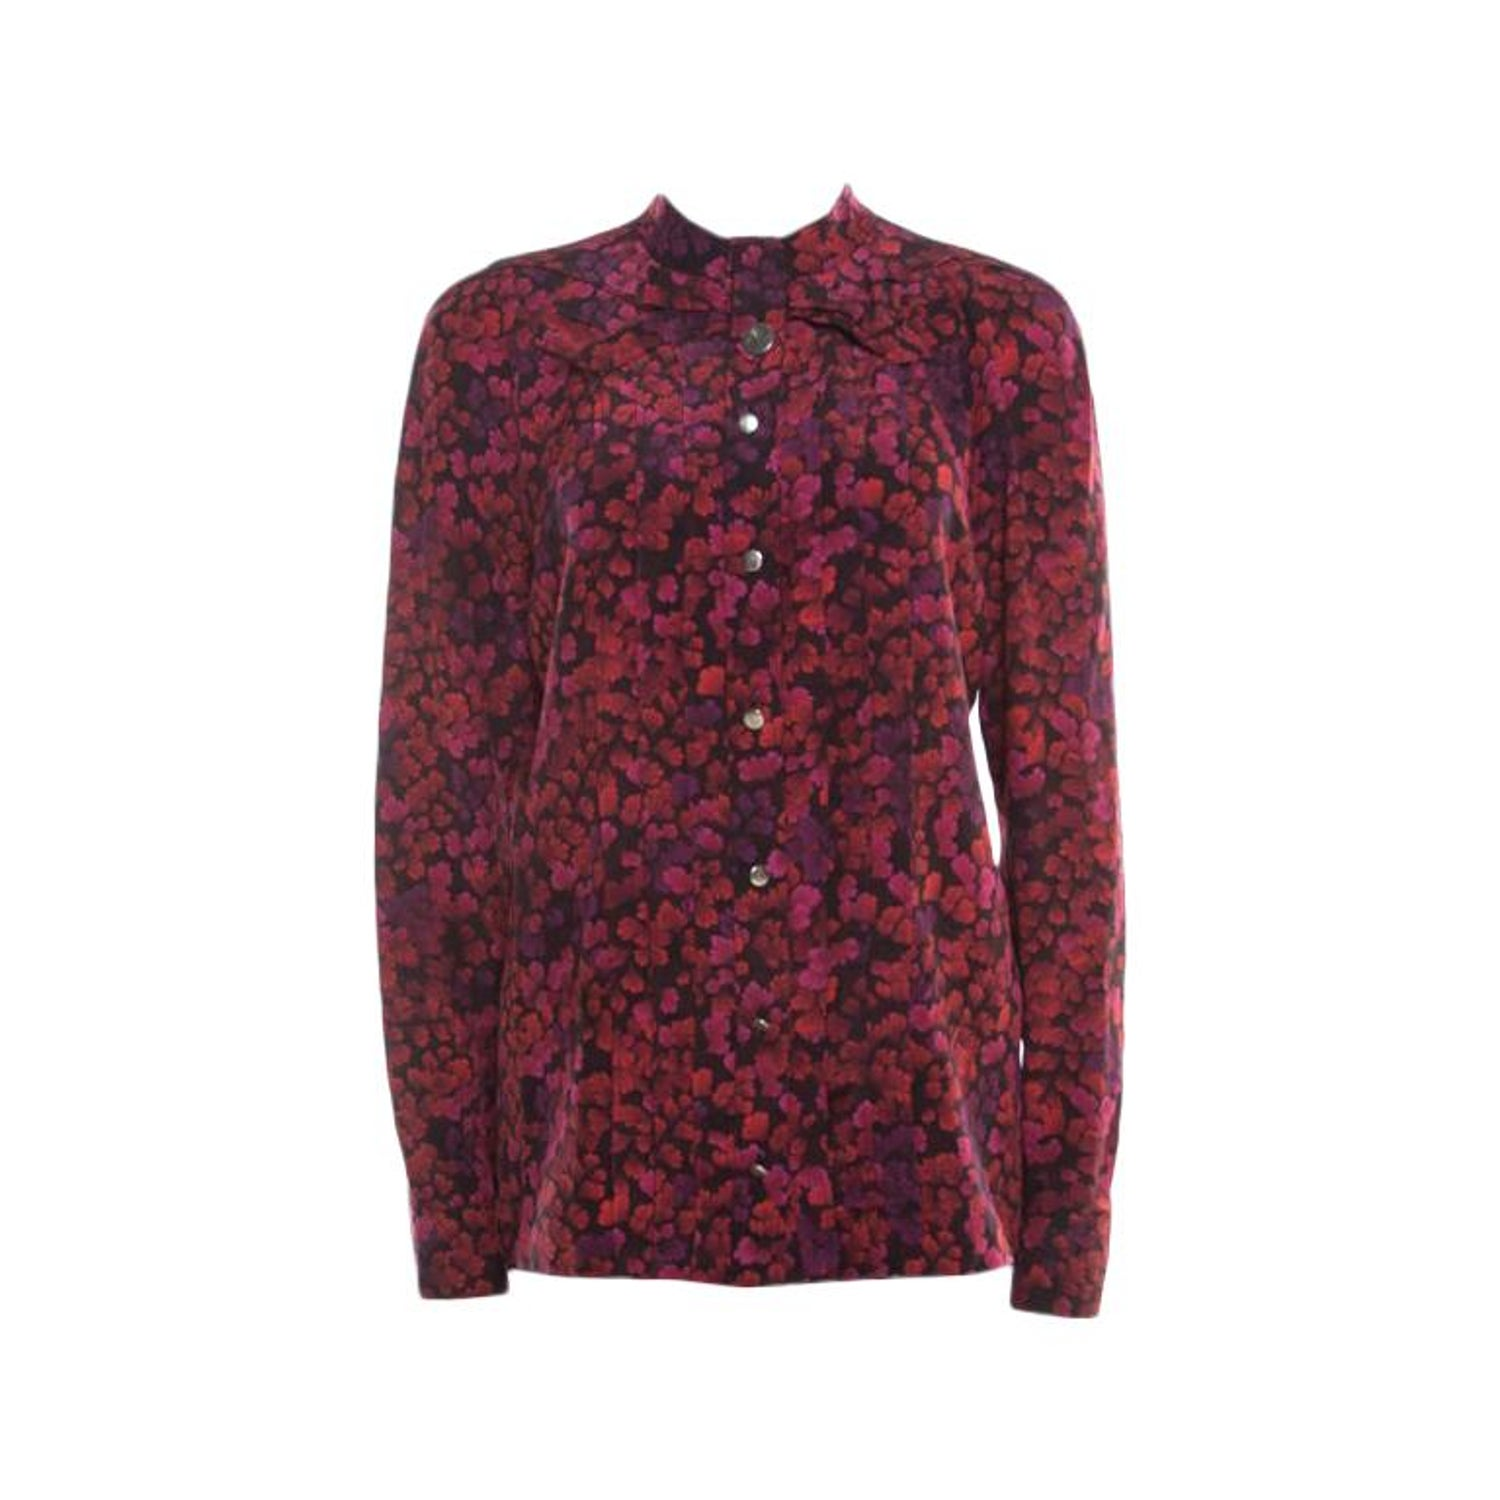 a9940d56639a Gucci Red and Purple Floral Printed Silk Neck Bow Detail Long Sleeve Blouse  M For Sale at 1stdibs